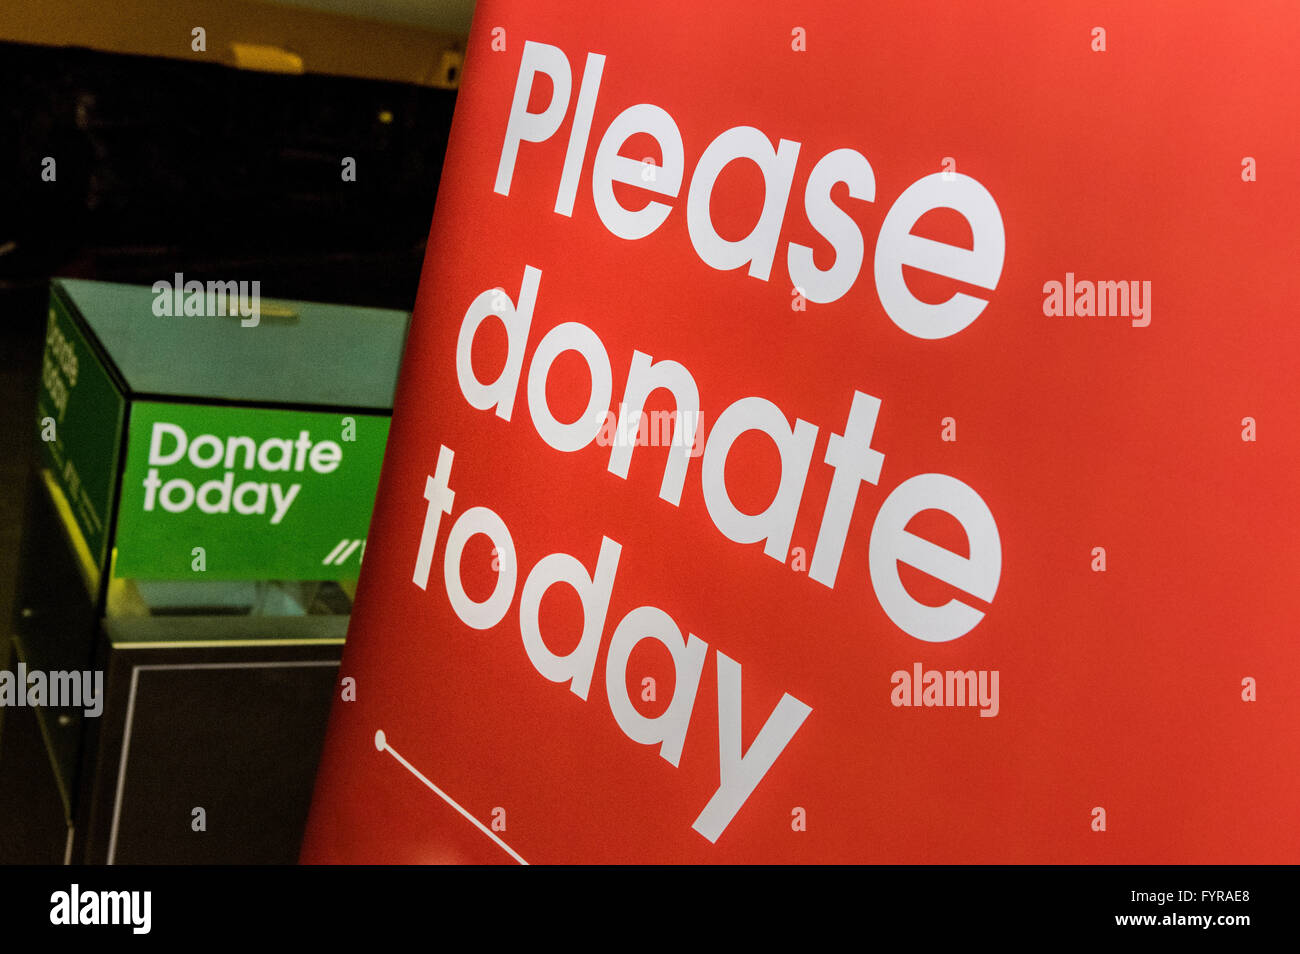 Please donate today sign - Stock Image